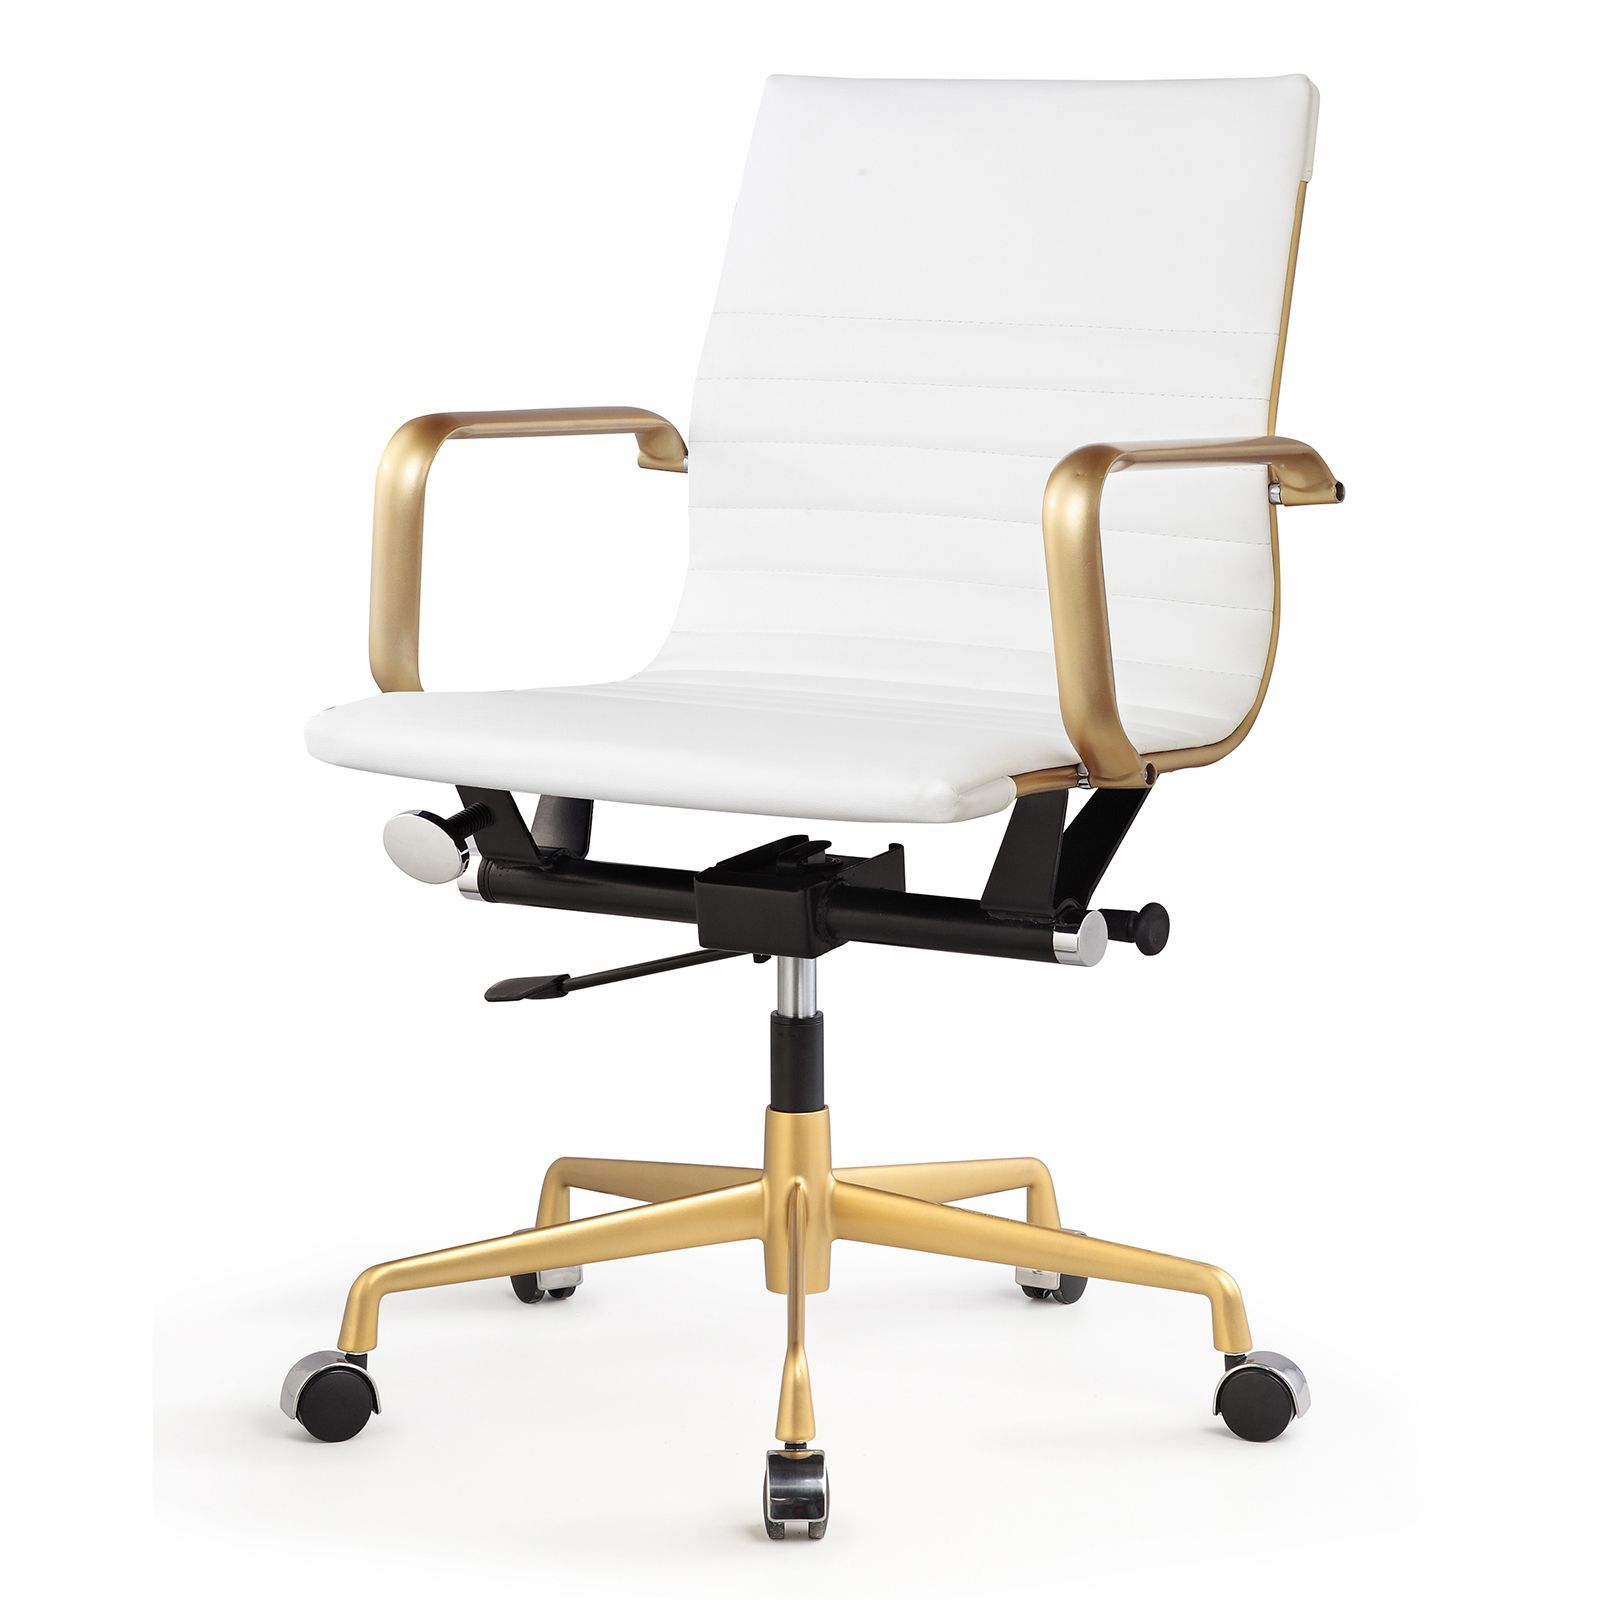 office chair overstock travel fabric high dix in gold and white leatherette shopping the best prices on task chairs